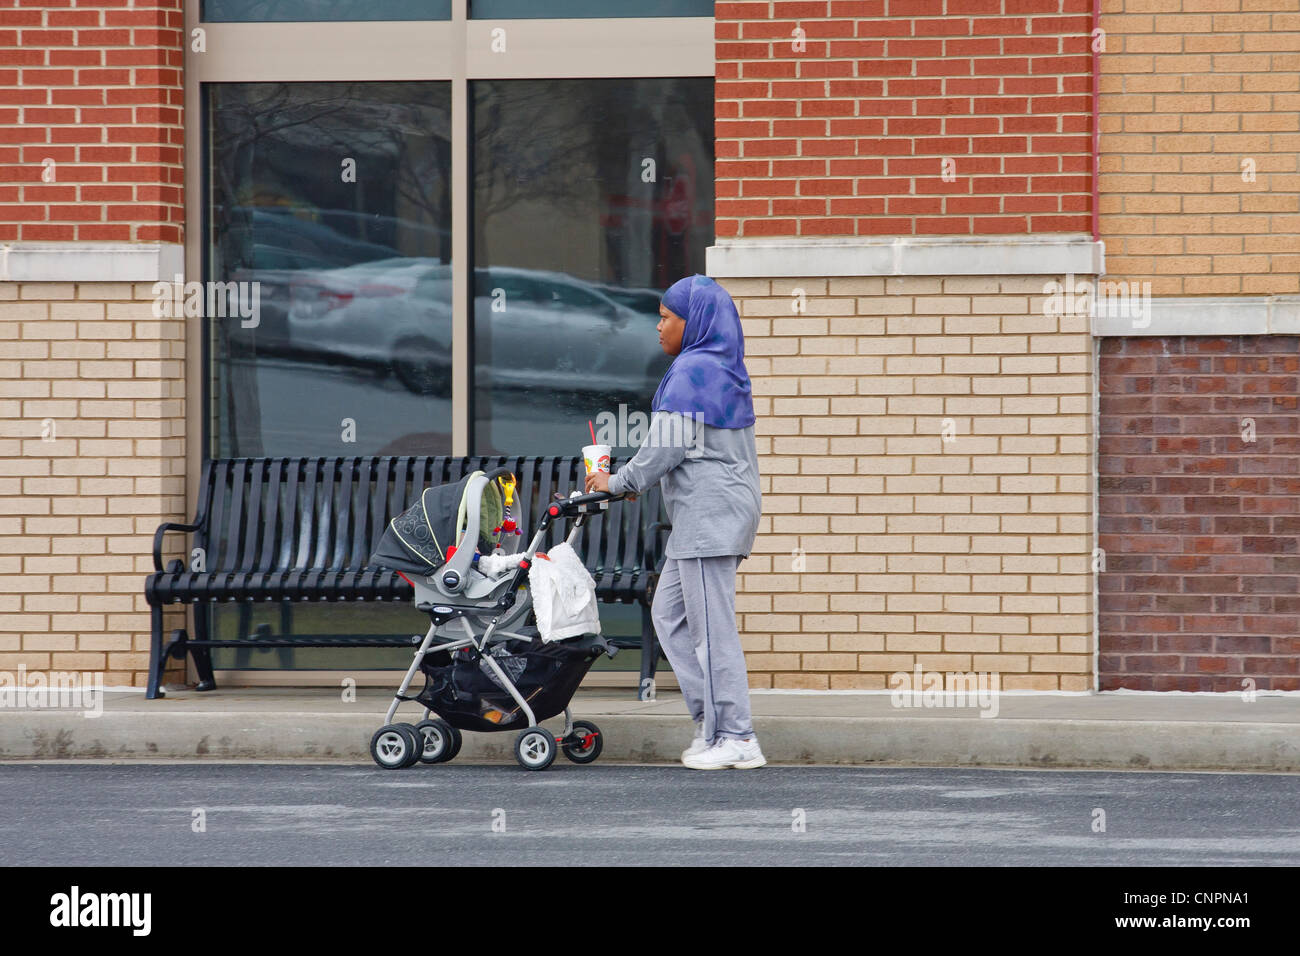 A black woman walking a baby in shopping center wearing traditional garb - Stock Image